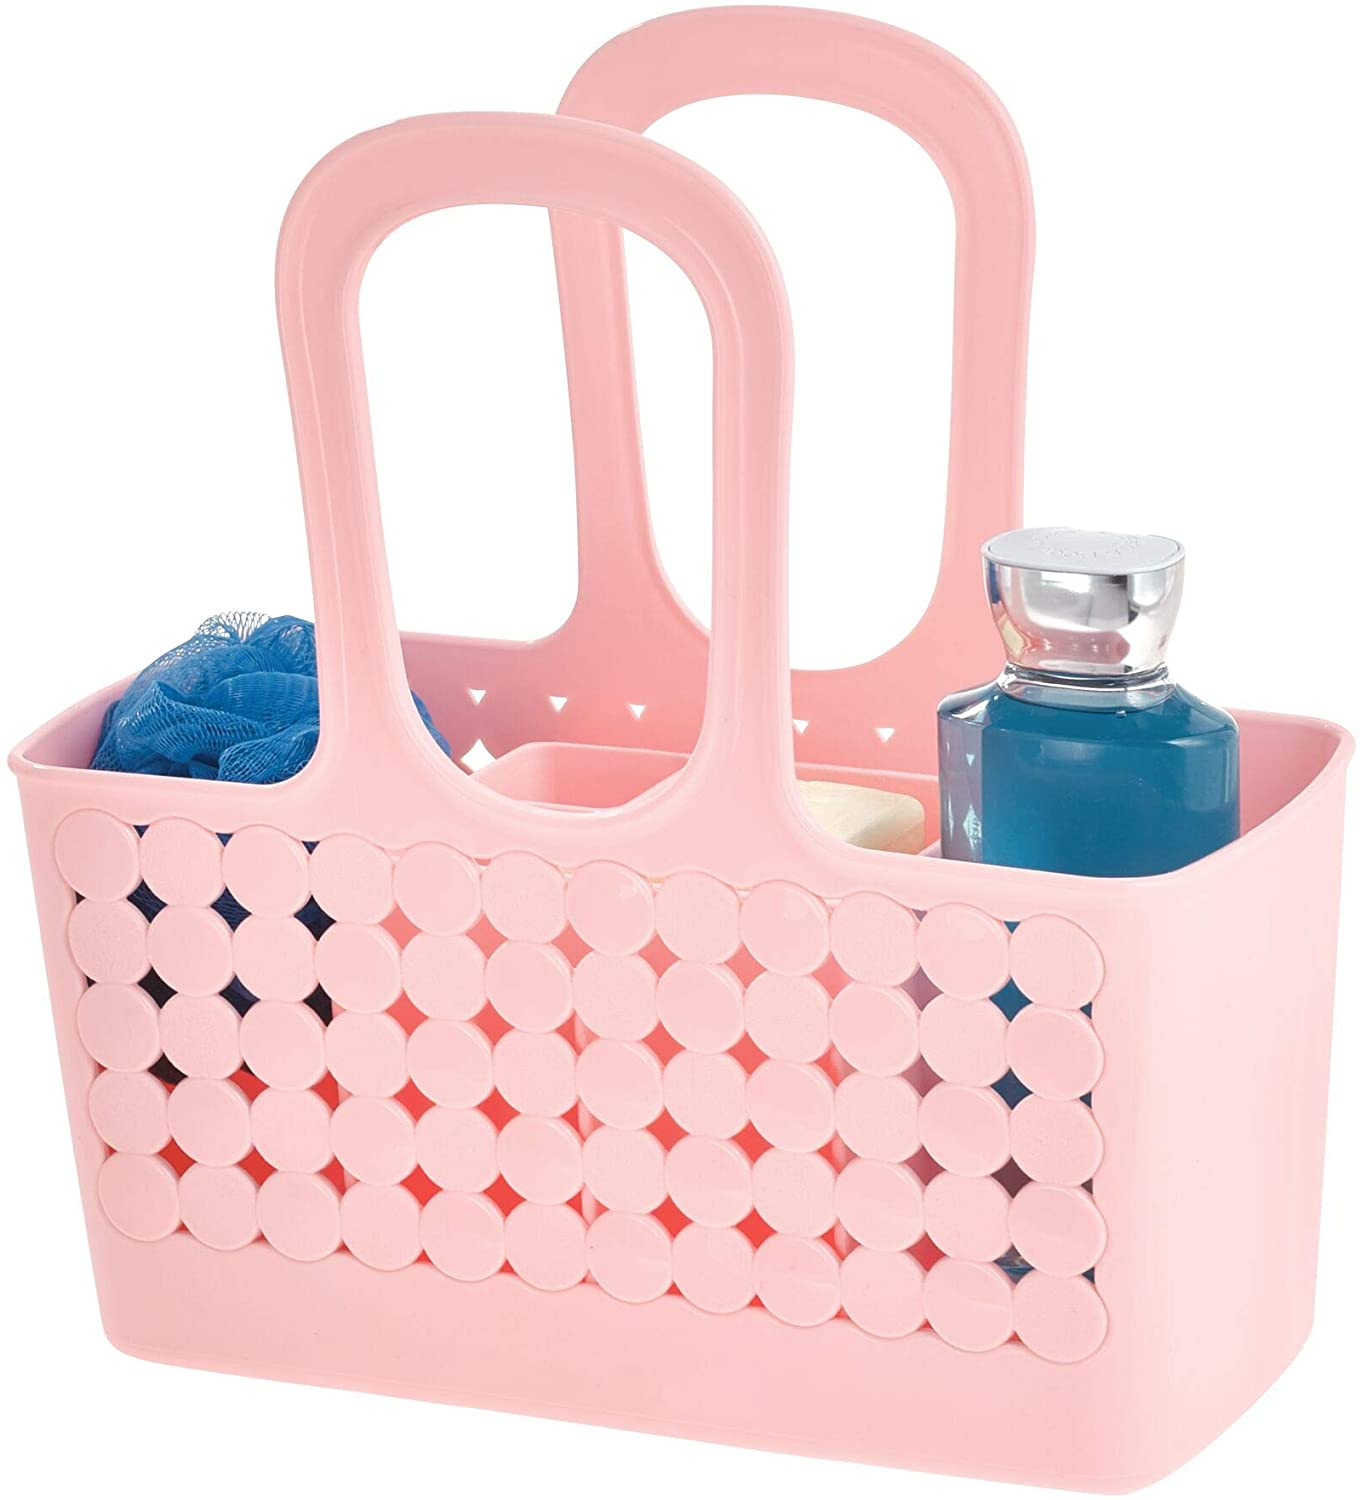 Plastic Bathroom Shower Tote Small Divided College Dorm Shower Caddy For Shampoo Conditioner Soap Cosmetics Beauty Products Blush Walmart Canada